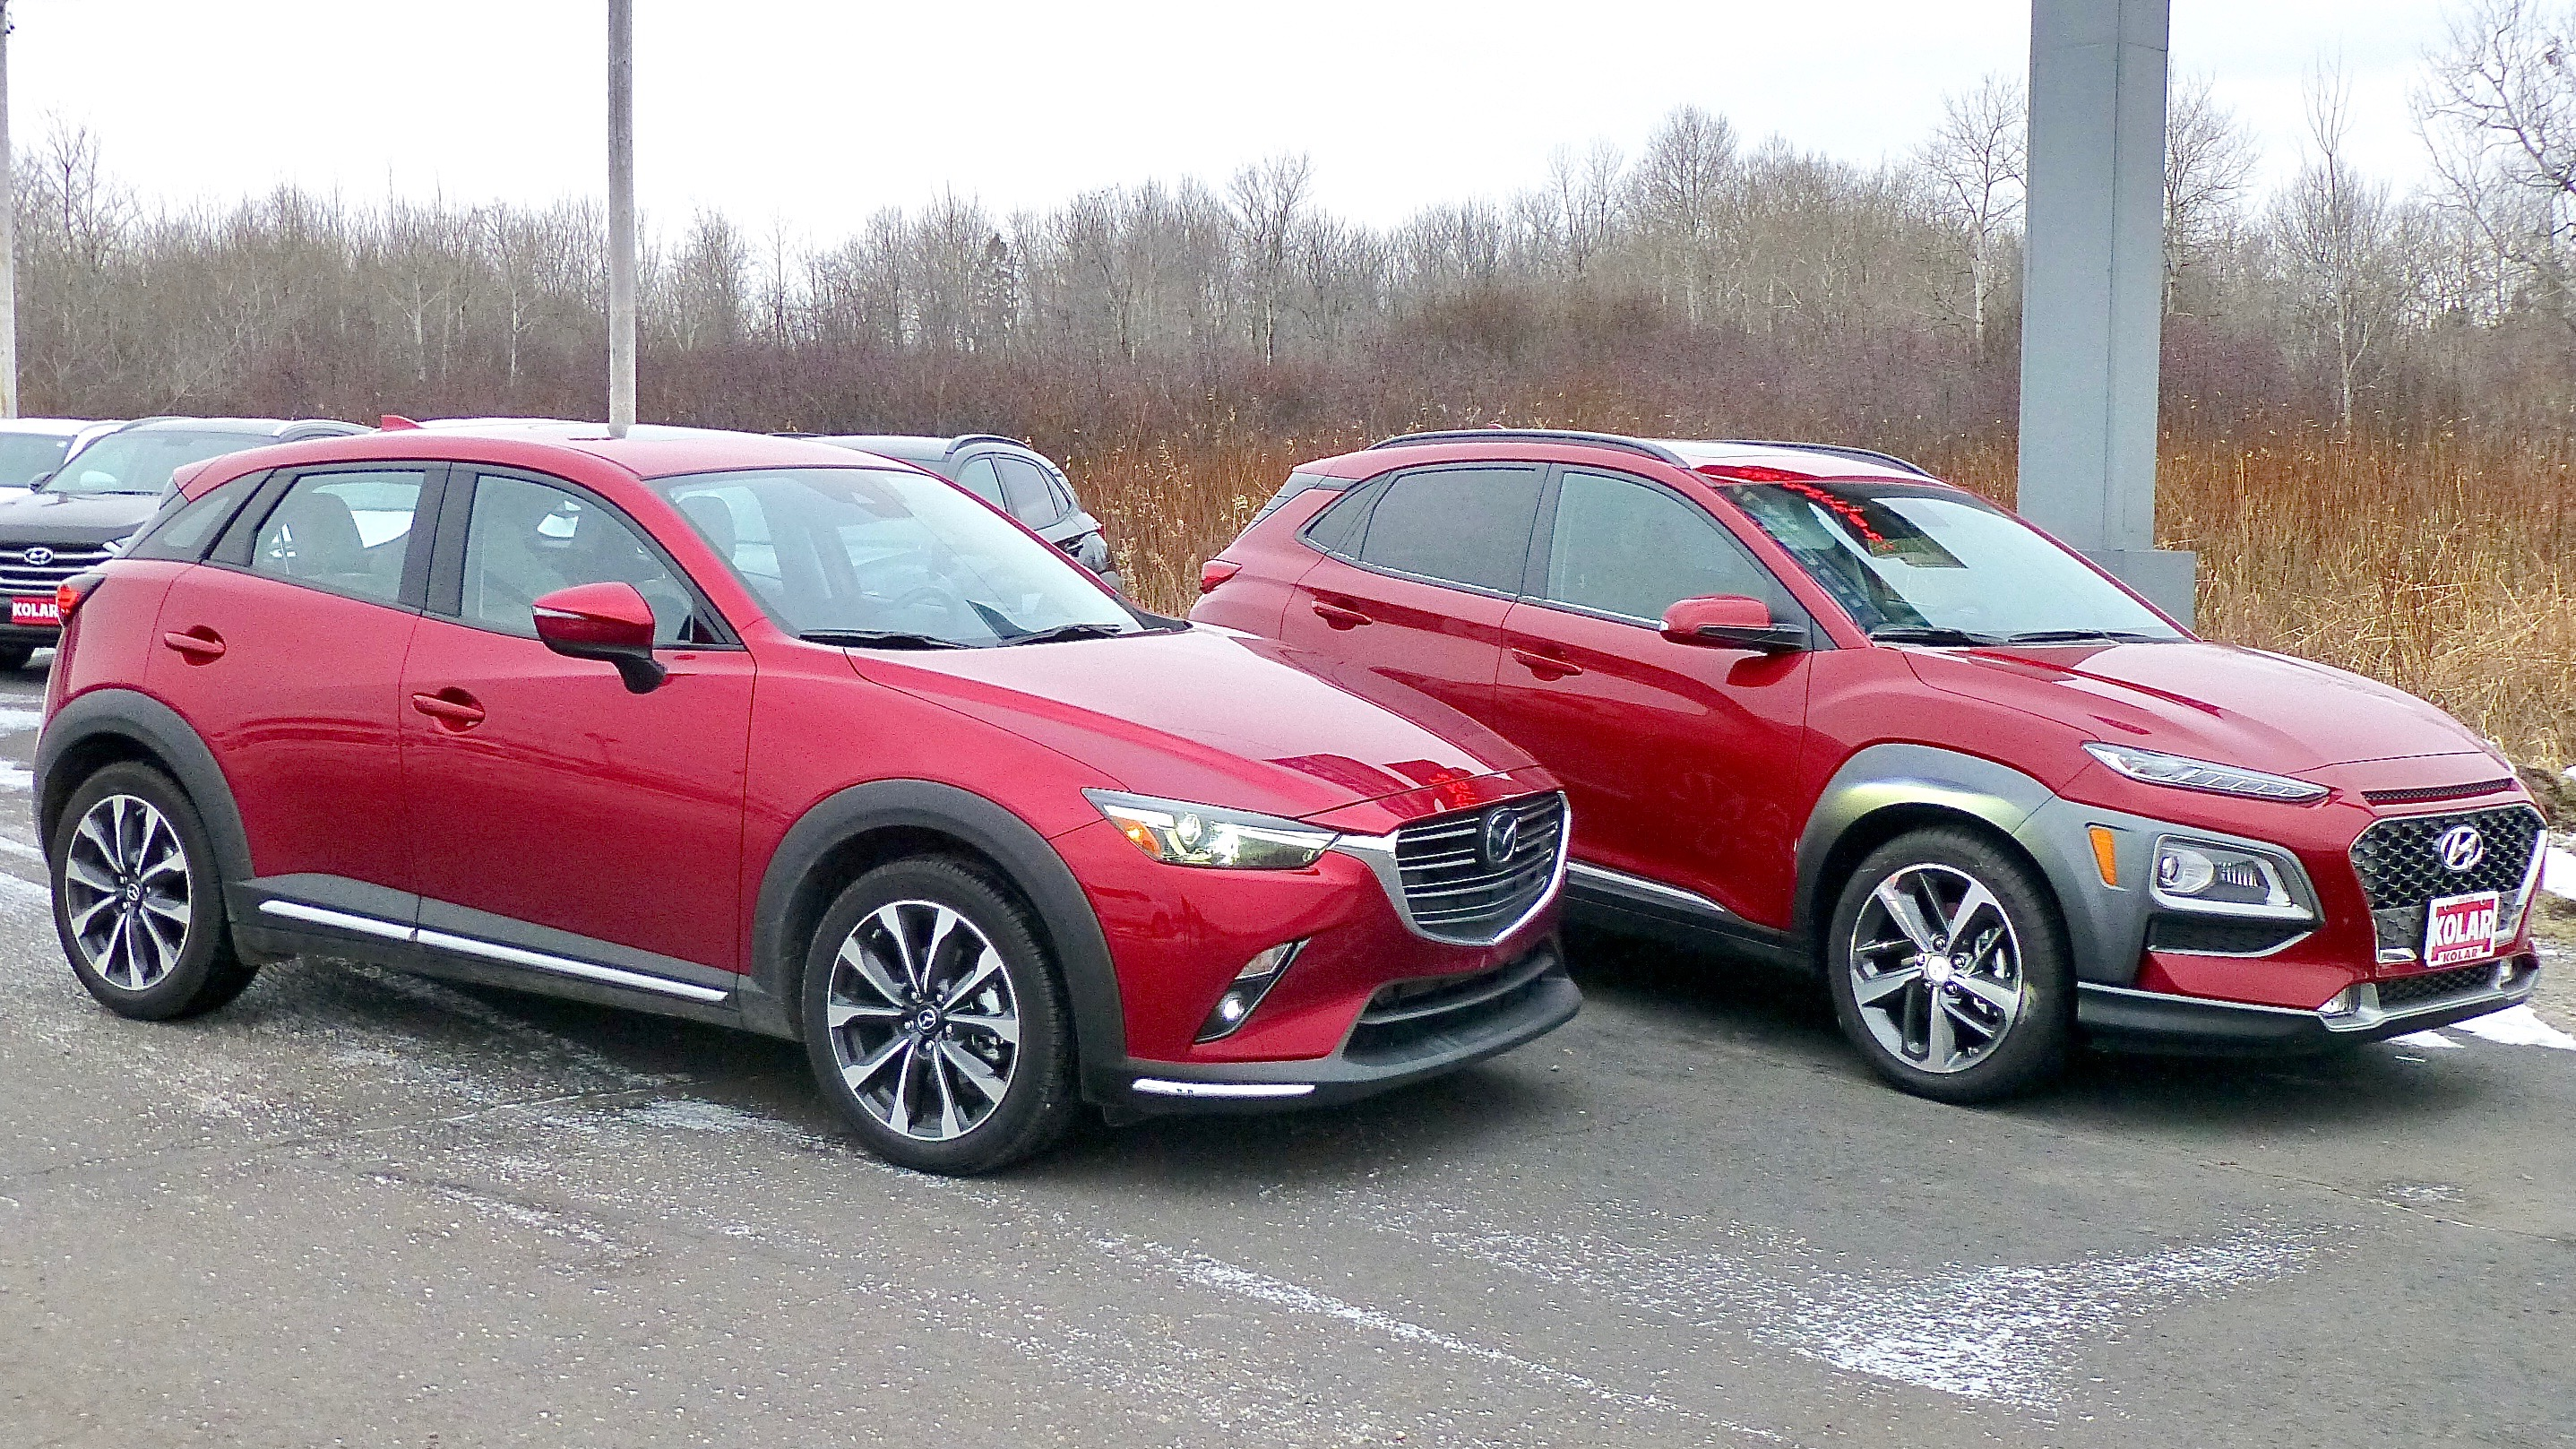 Holiday gifts can come in all sizes, including cars, and topping our suggestions is the duel between the Mazda CX-3, left, and the Hyundai Kona -- both small, inexpensive SUVs.